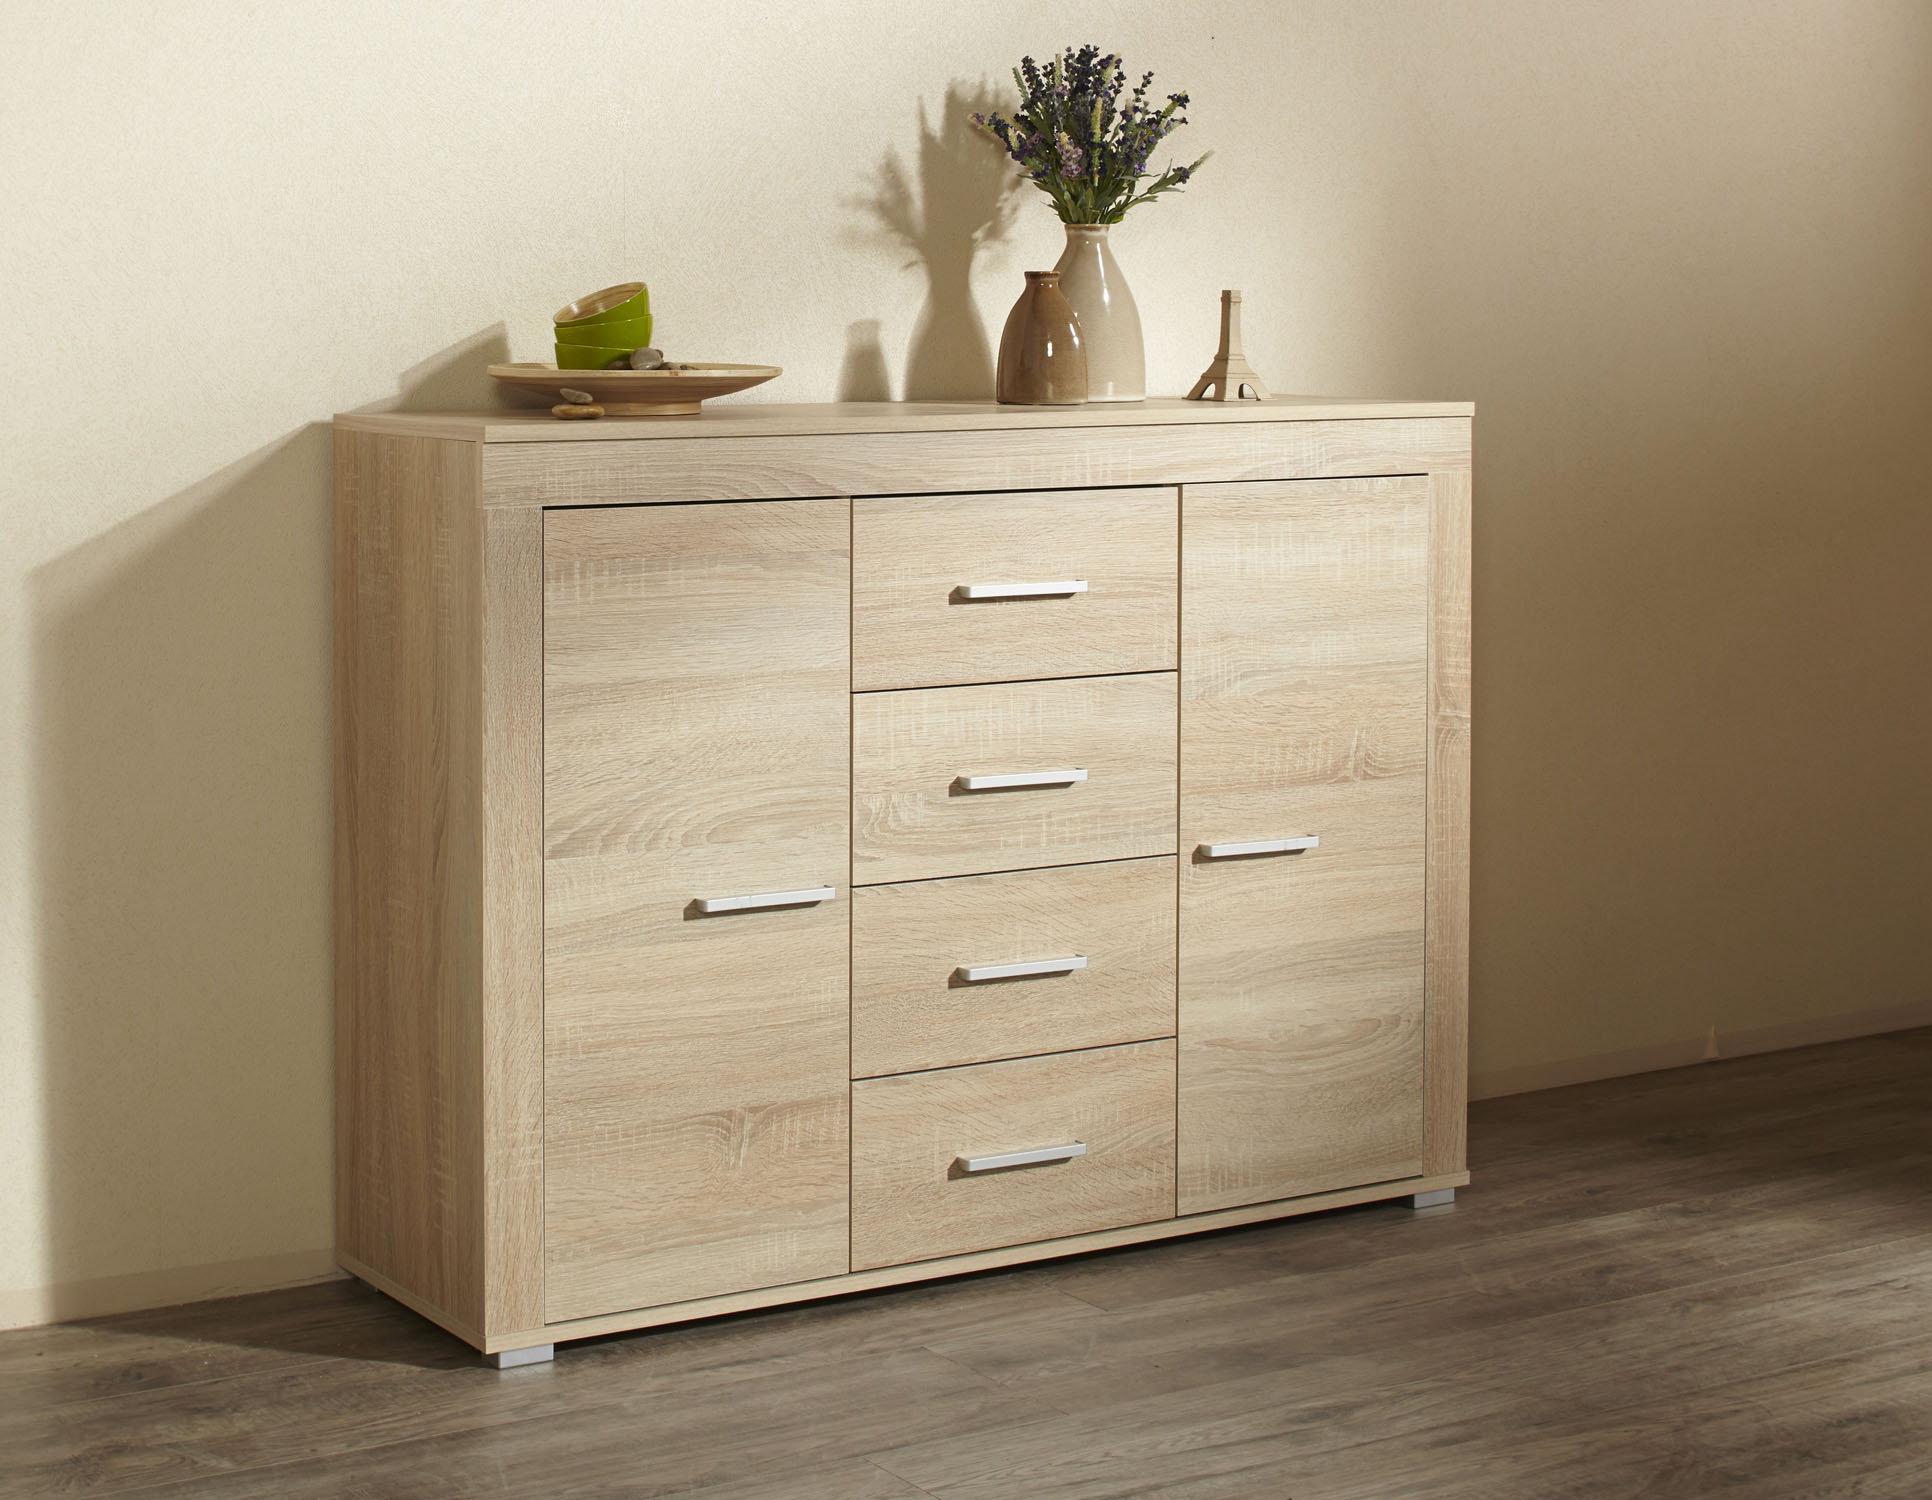 Kommode sideboard highboard anrichte schrank kernbuche for Schrank sonoma eiche